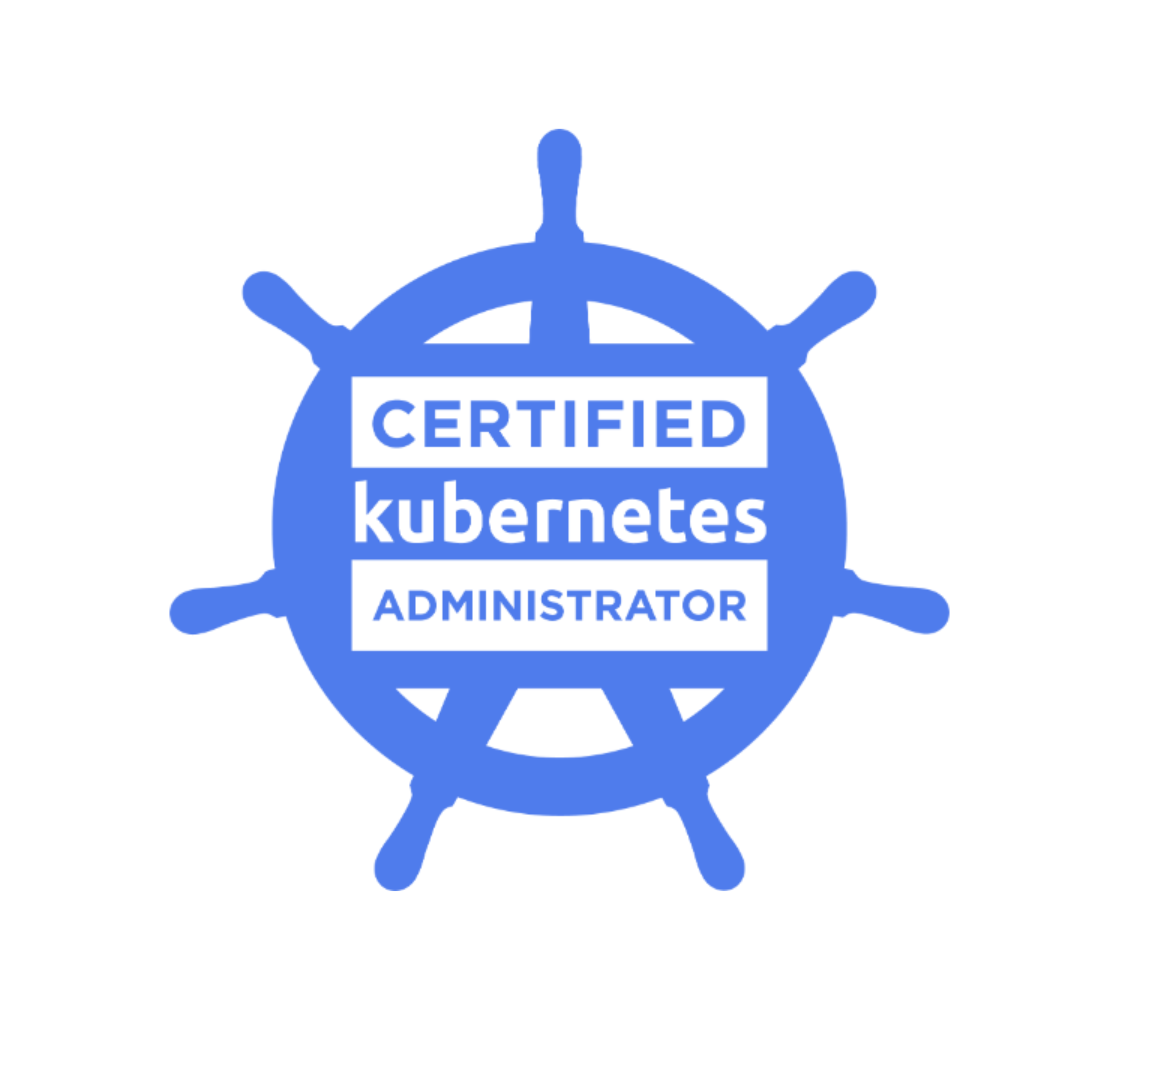 7.5 tips to help you ace the Certified Kubernetes Administrator (CKA) exam on kubedex.com